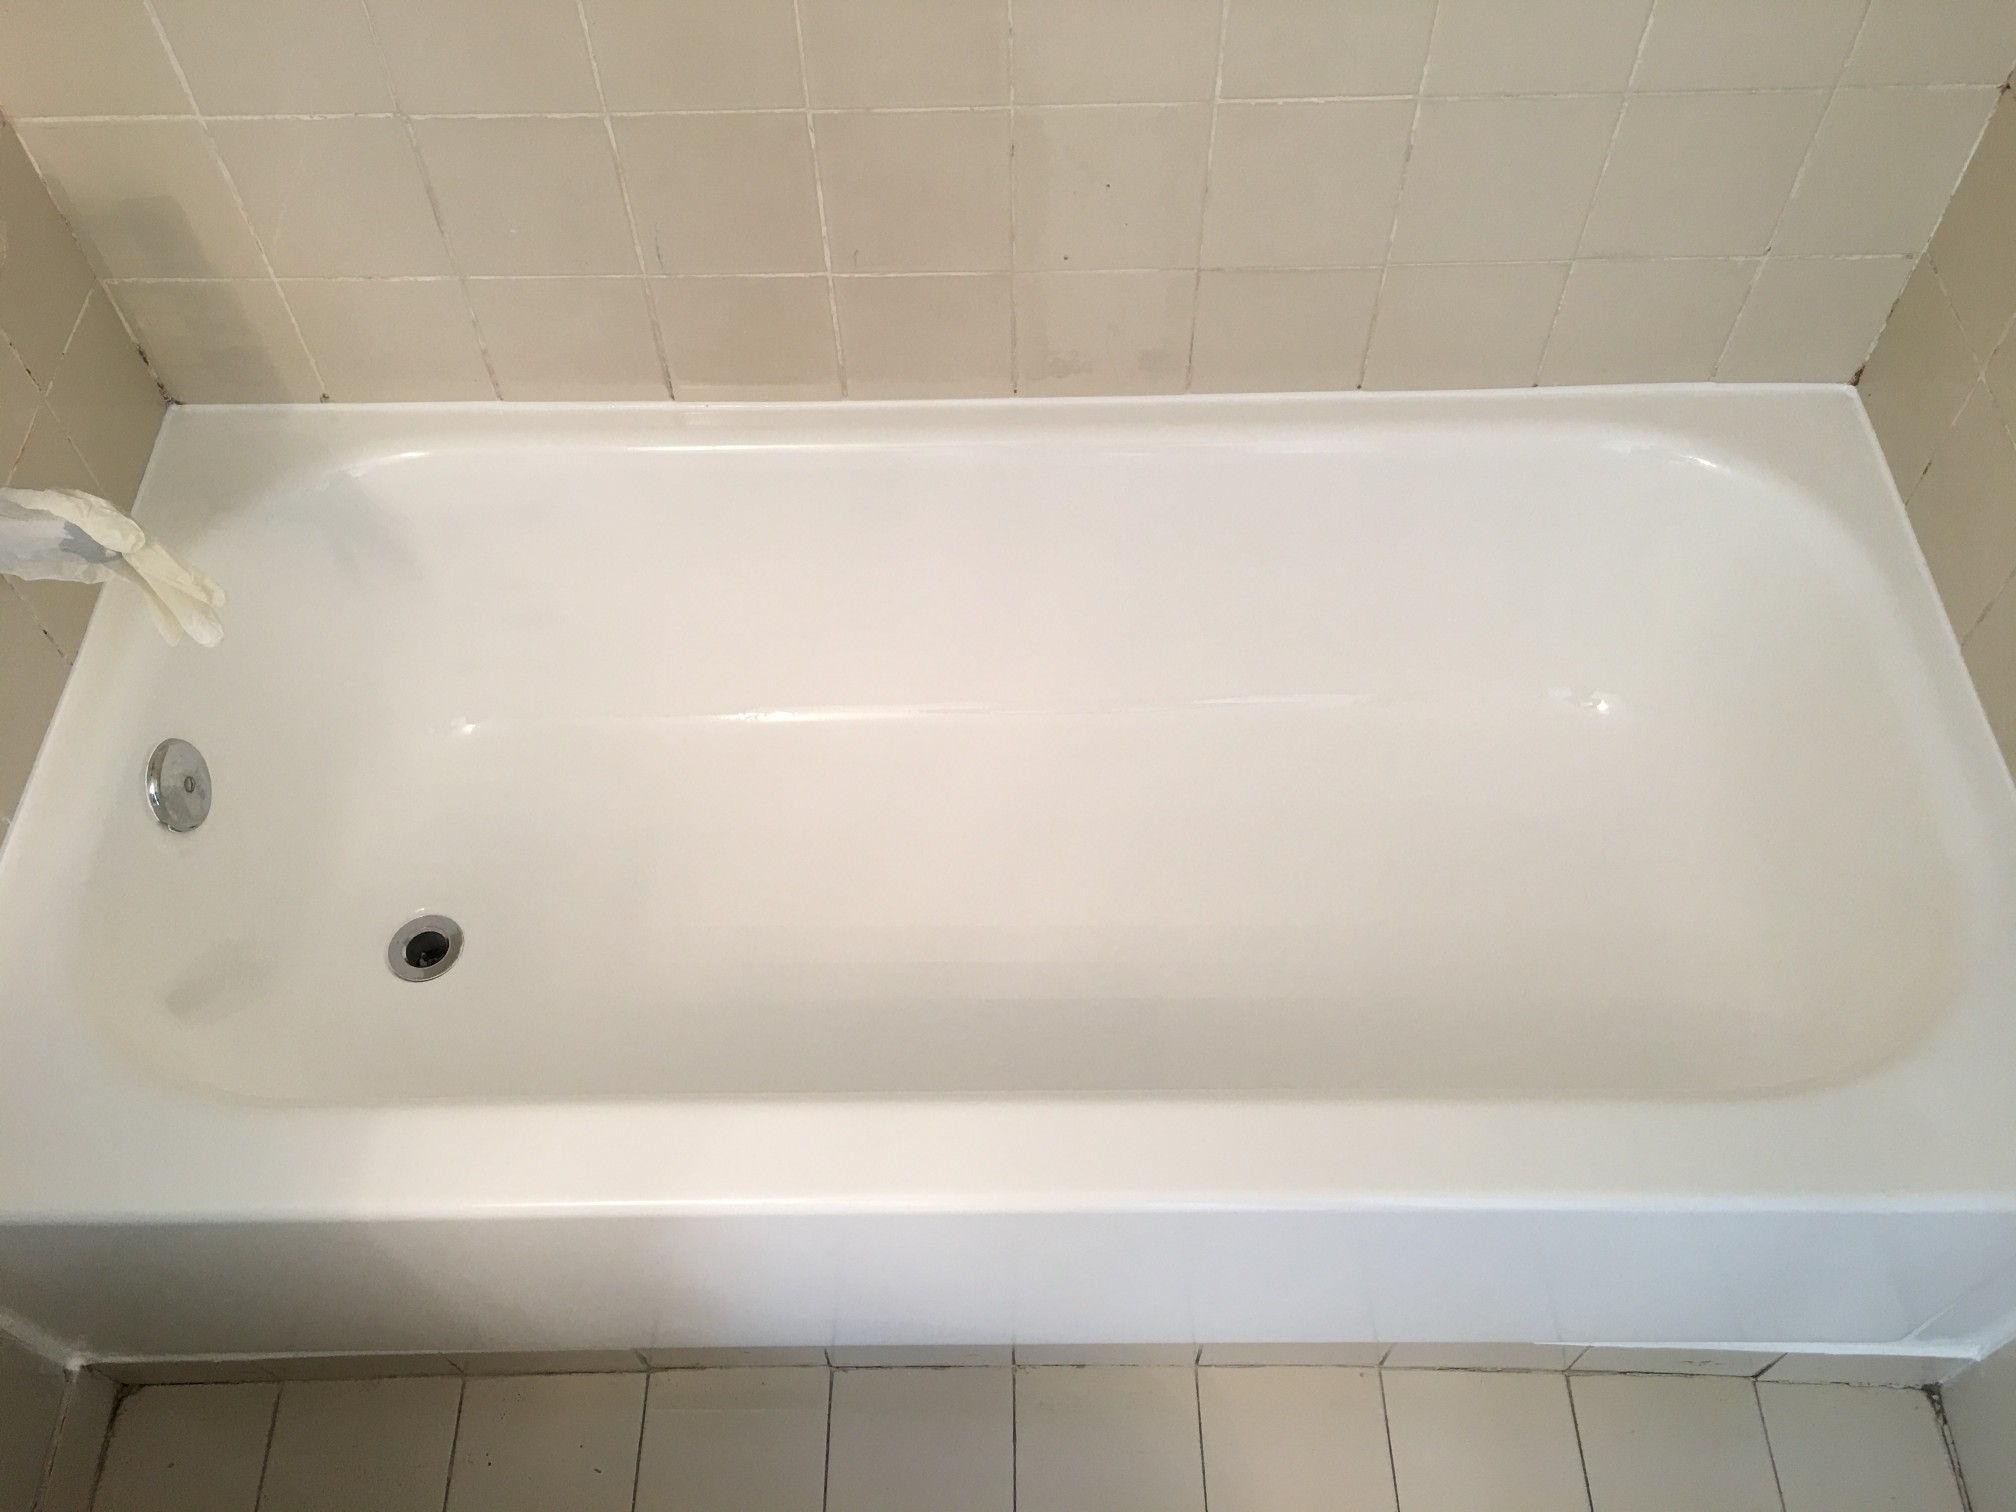 painted can repaint bathtub do hometalk q what to i a clean